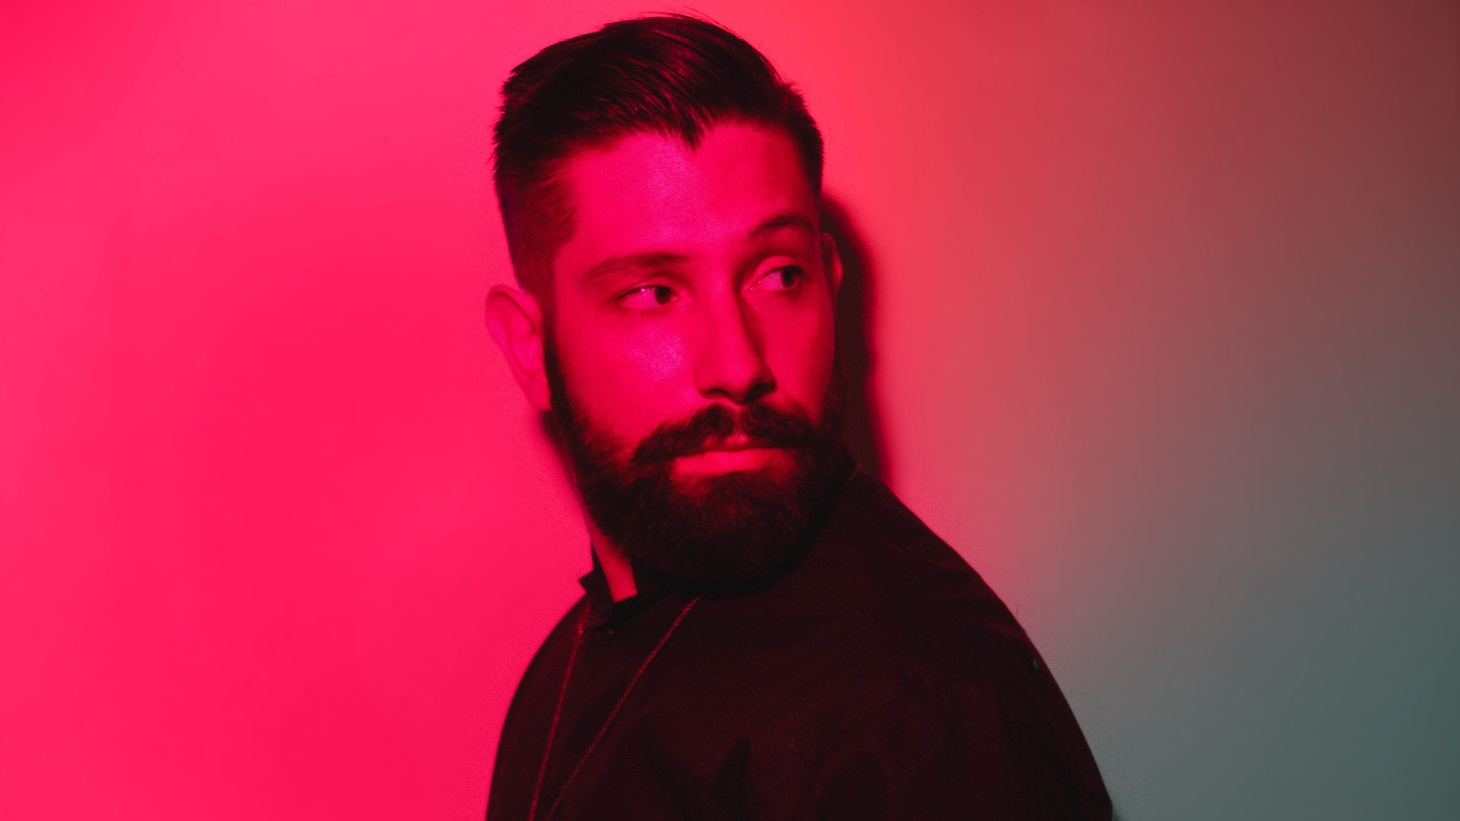 The album Moving On got its fair-share of airplay on KCRW back in 2014. We mark a new chapter for its creator, Bulgarian-born Gueorgui Linev, aka Kan Wakan.